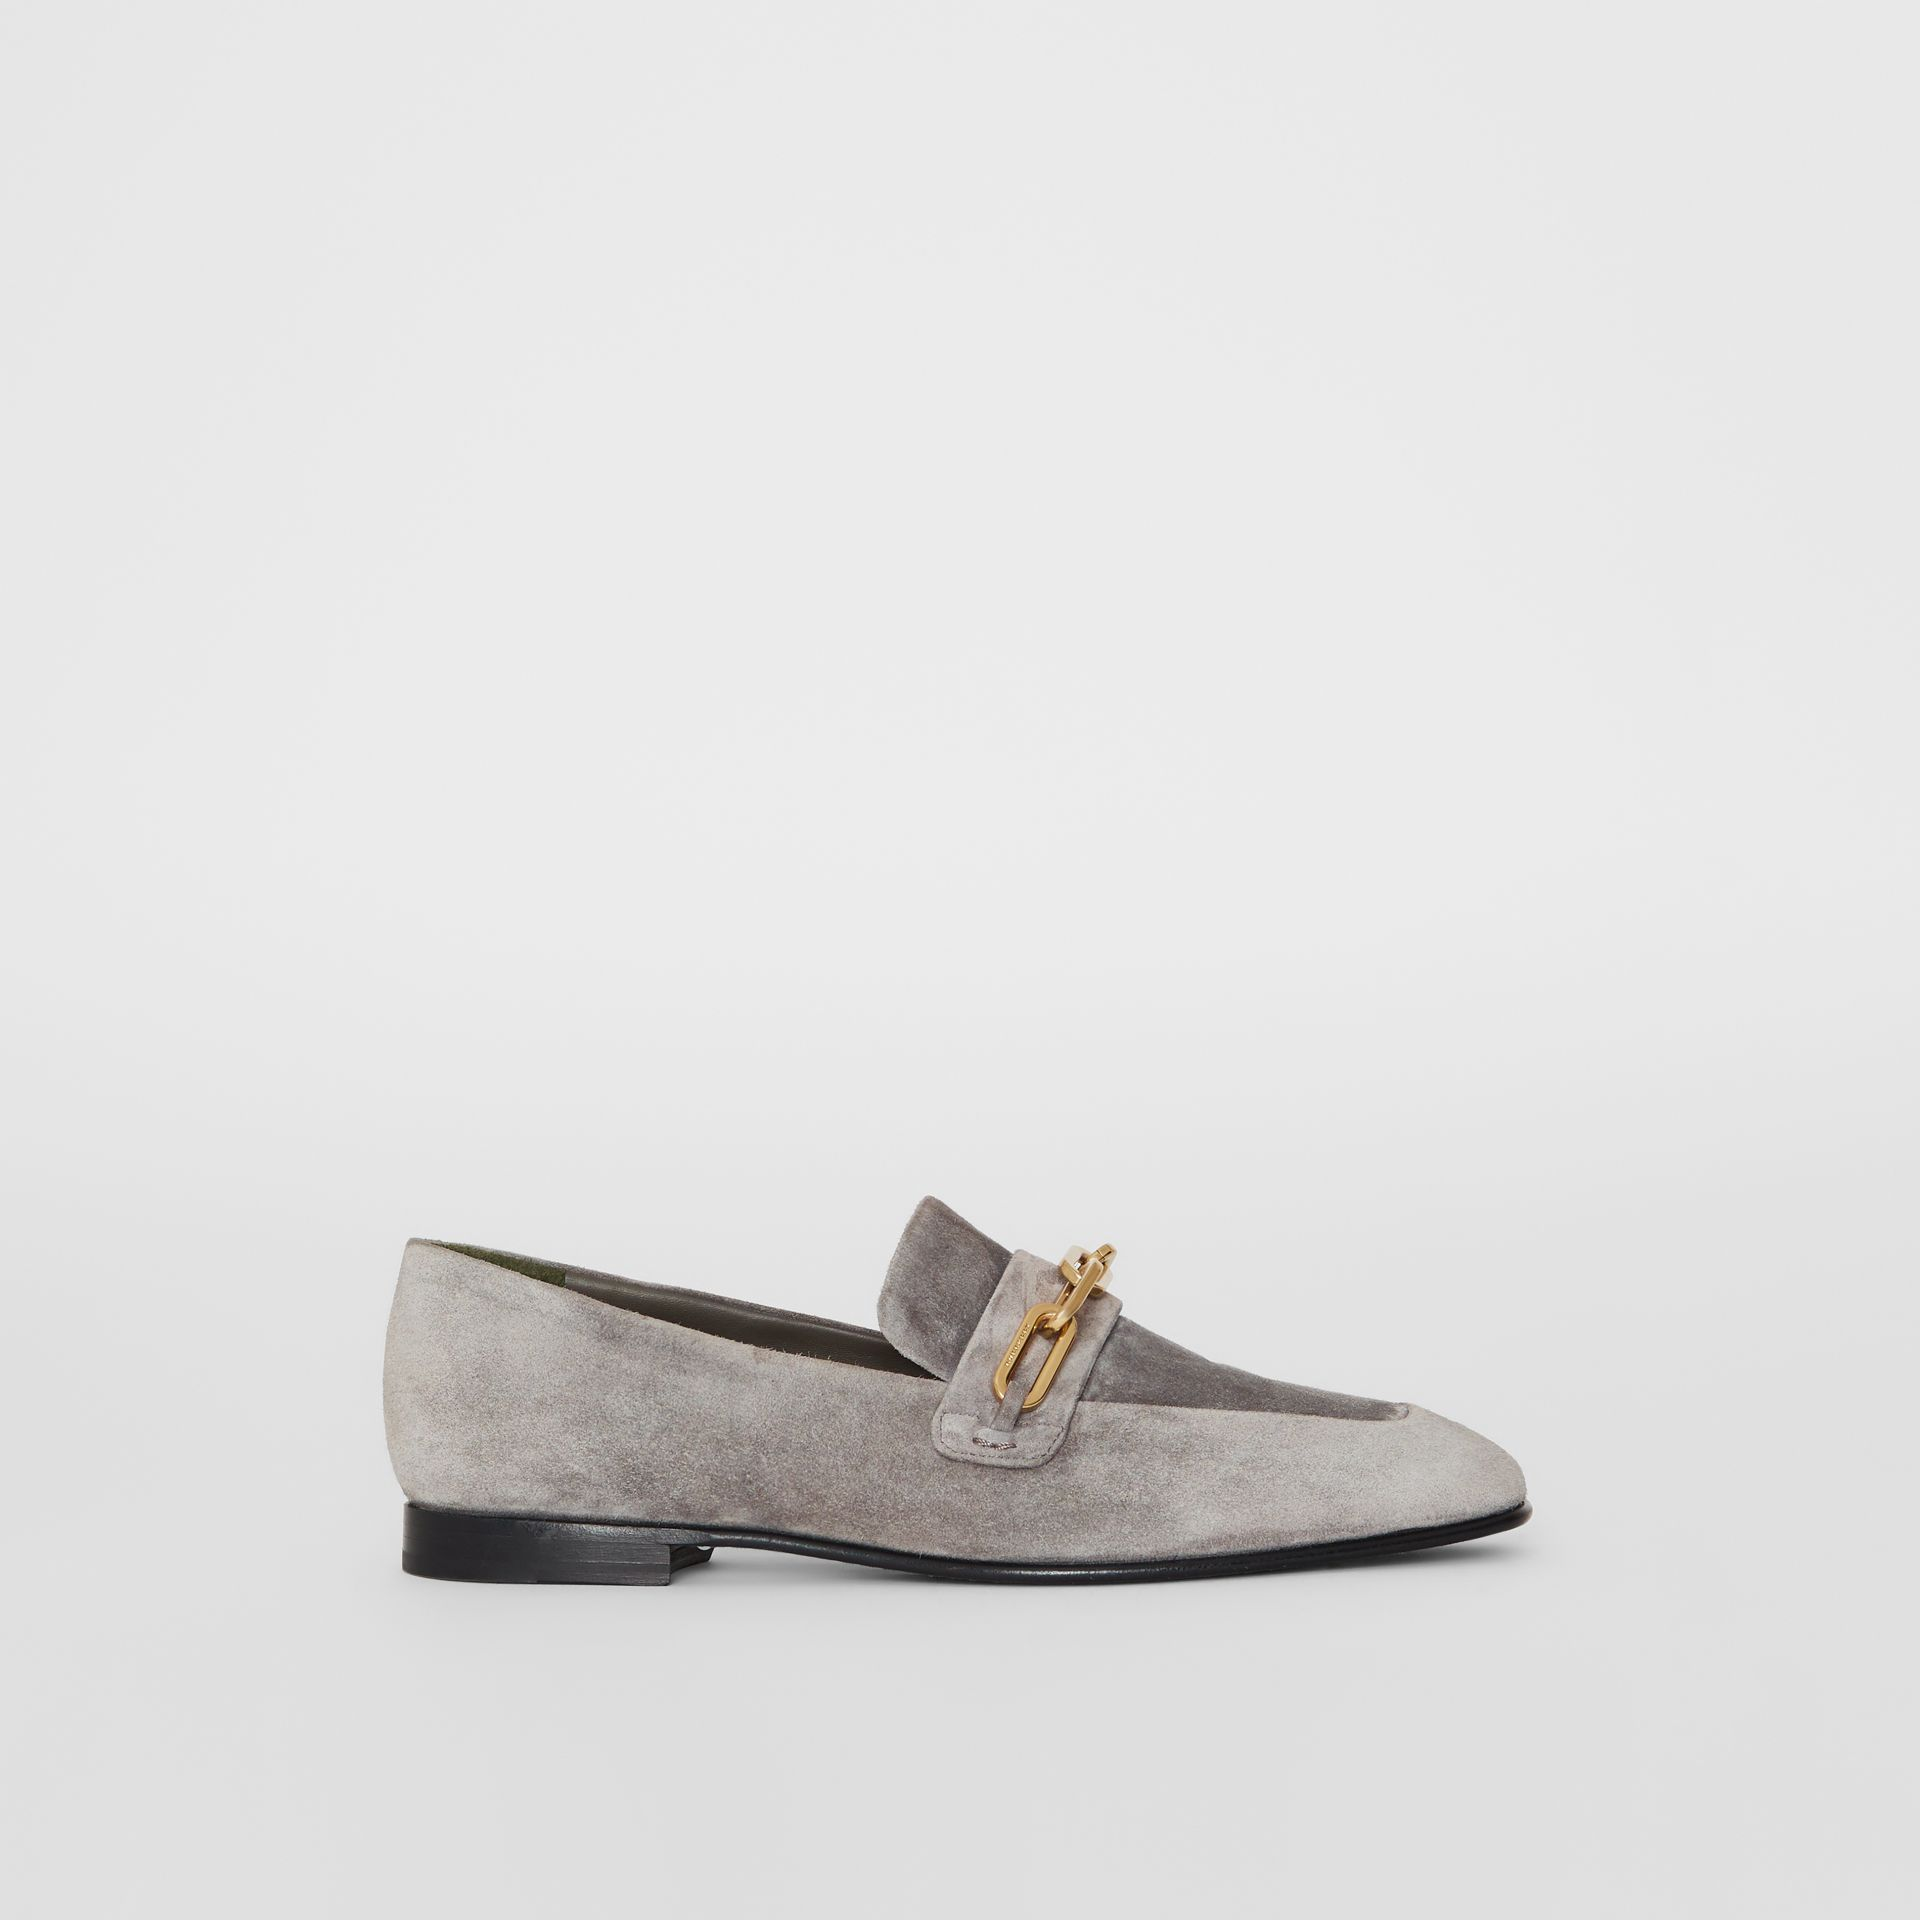 Link Detail Suede Loafers in Smokey Grey - Women | Burberry - gallery image 5